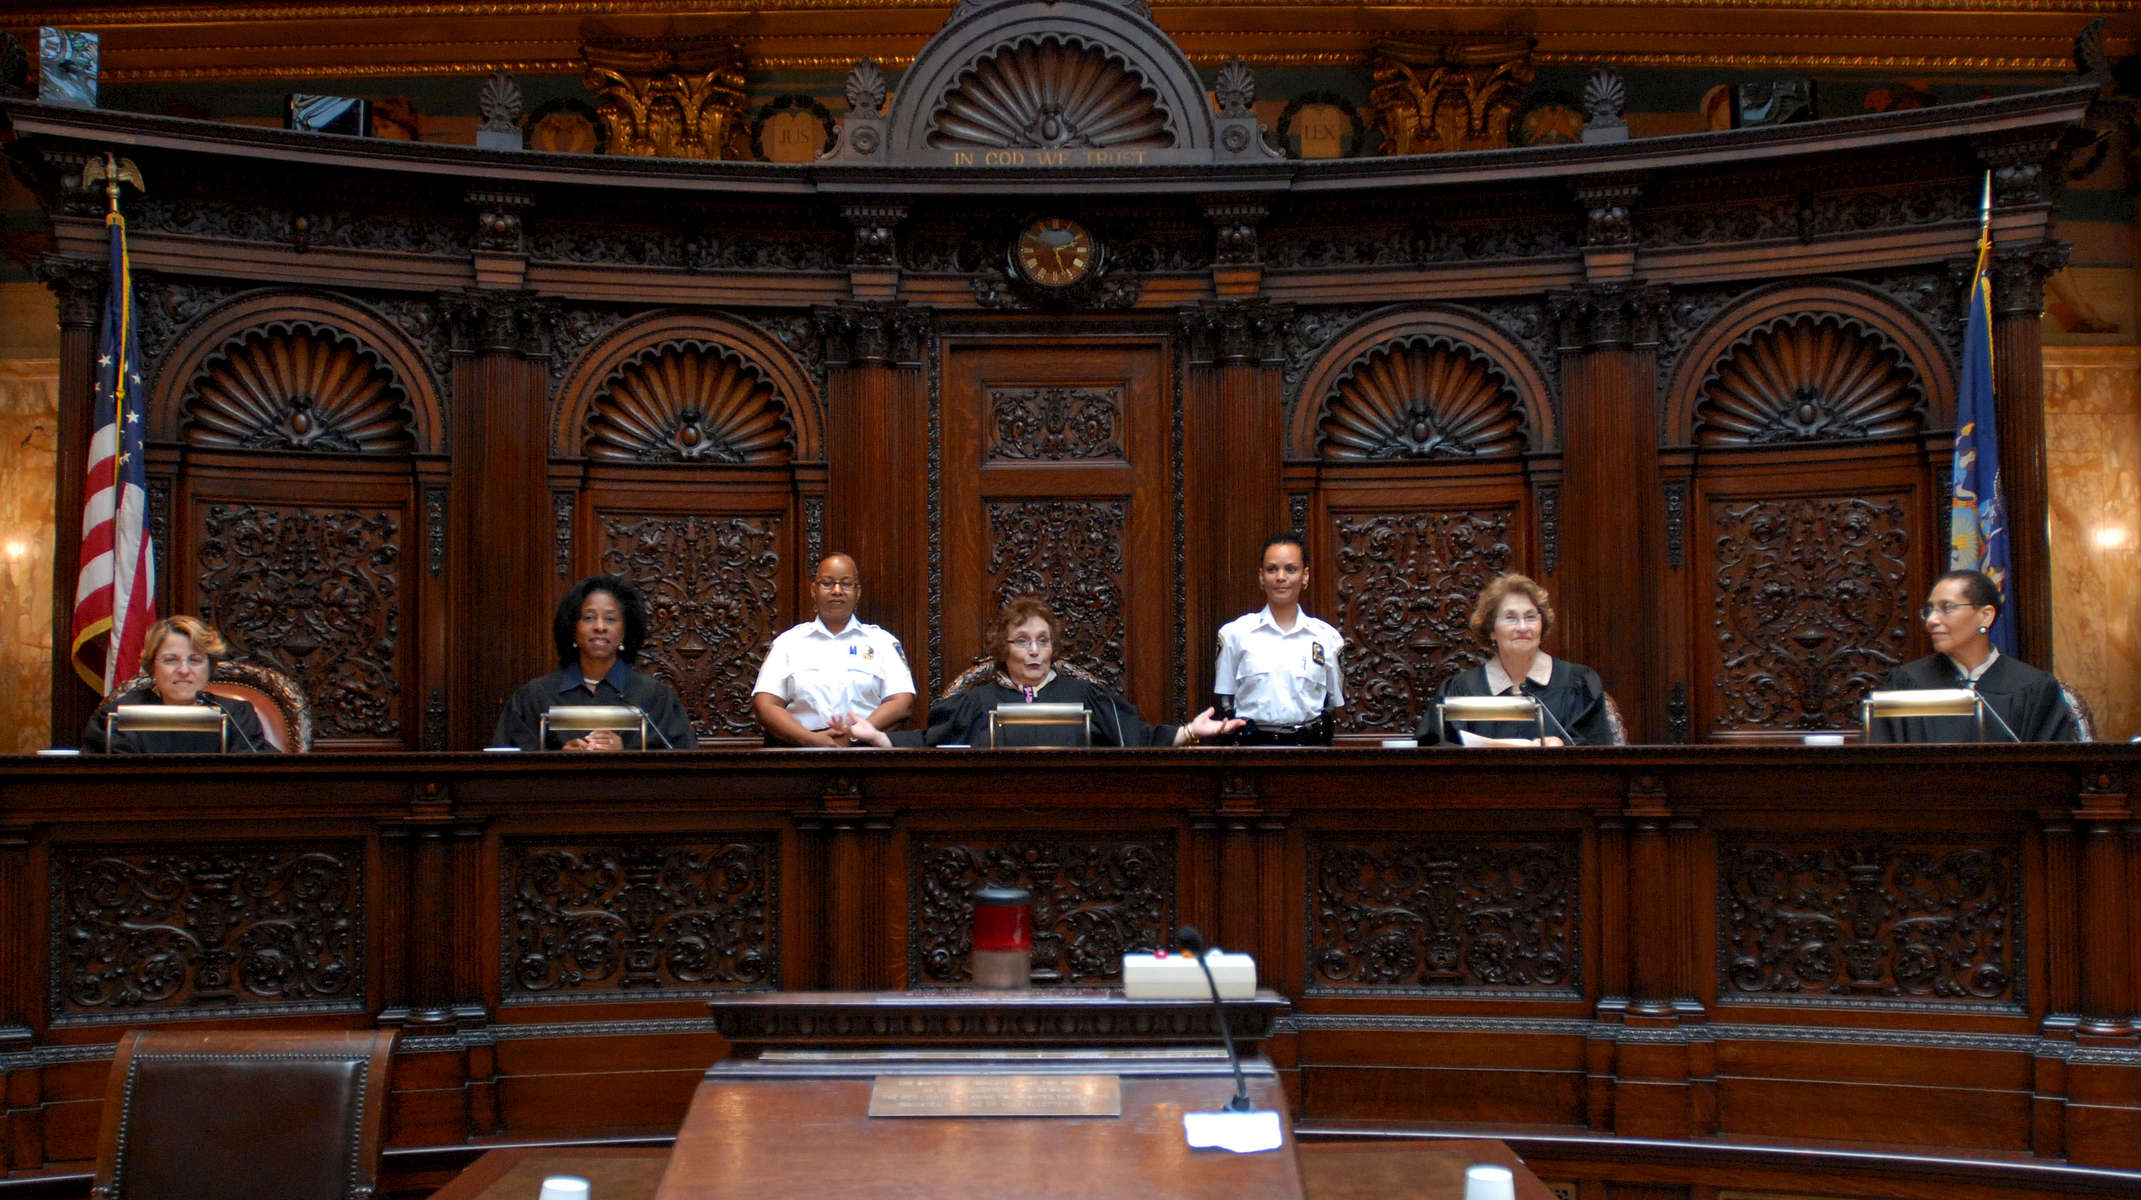 The first all woman panel at the Appellate Division, First Department    Left to right: Rosalyn H. Richter; Dianne T. Renwick; Angela M. Mazzarelli;    Helen E. Freedman; Sheila Abdus-Salaam – June, 2010